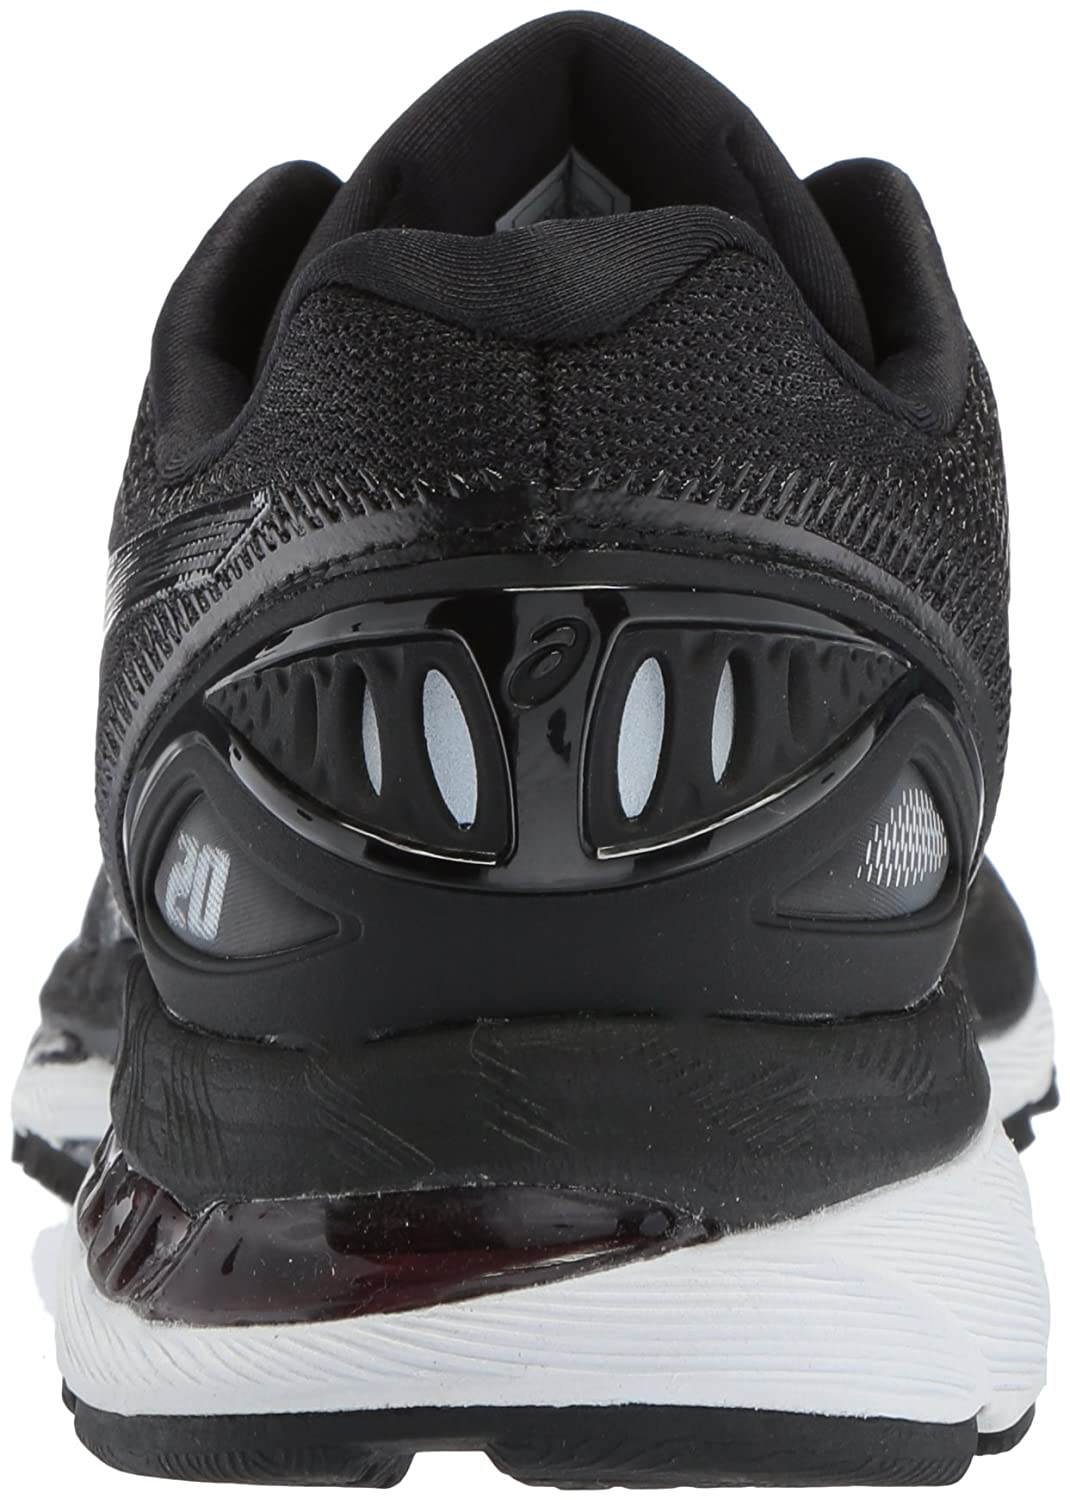 ASICS Women's Gel-Nimbus 20 Running Shoe B071HV11JL 11 B(M) US|Black/White/Carbon